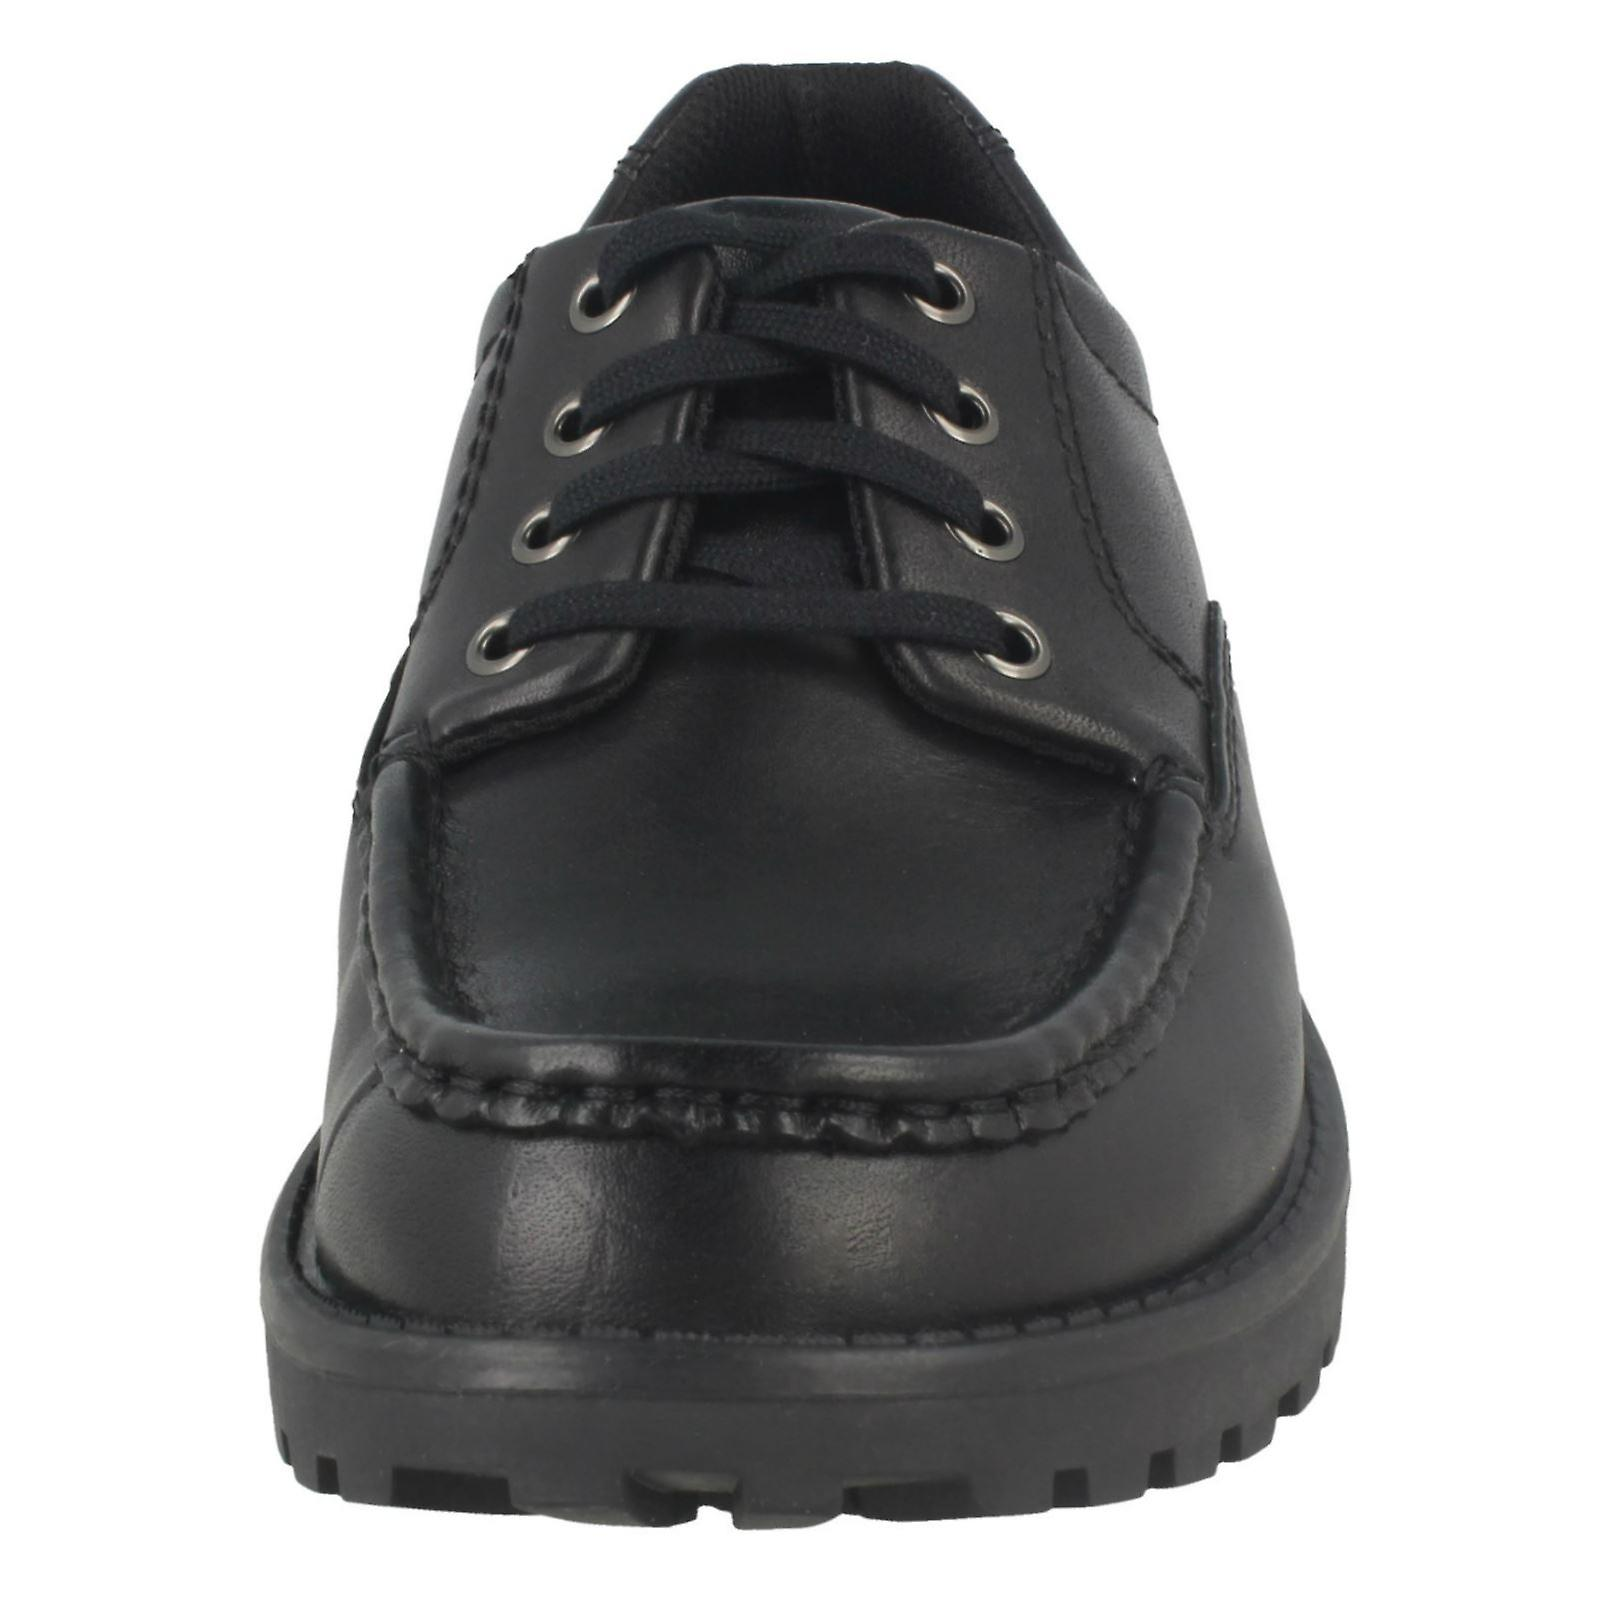 Senior Boys Bootleg By Clarks School Shoes Utility Boy